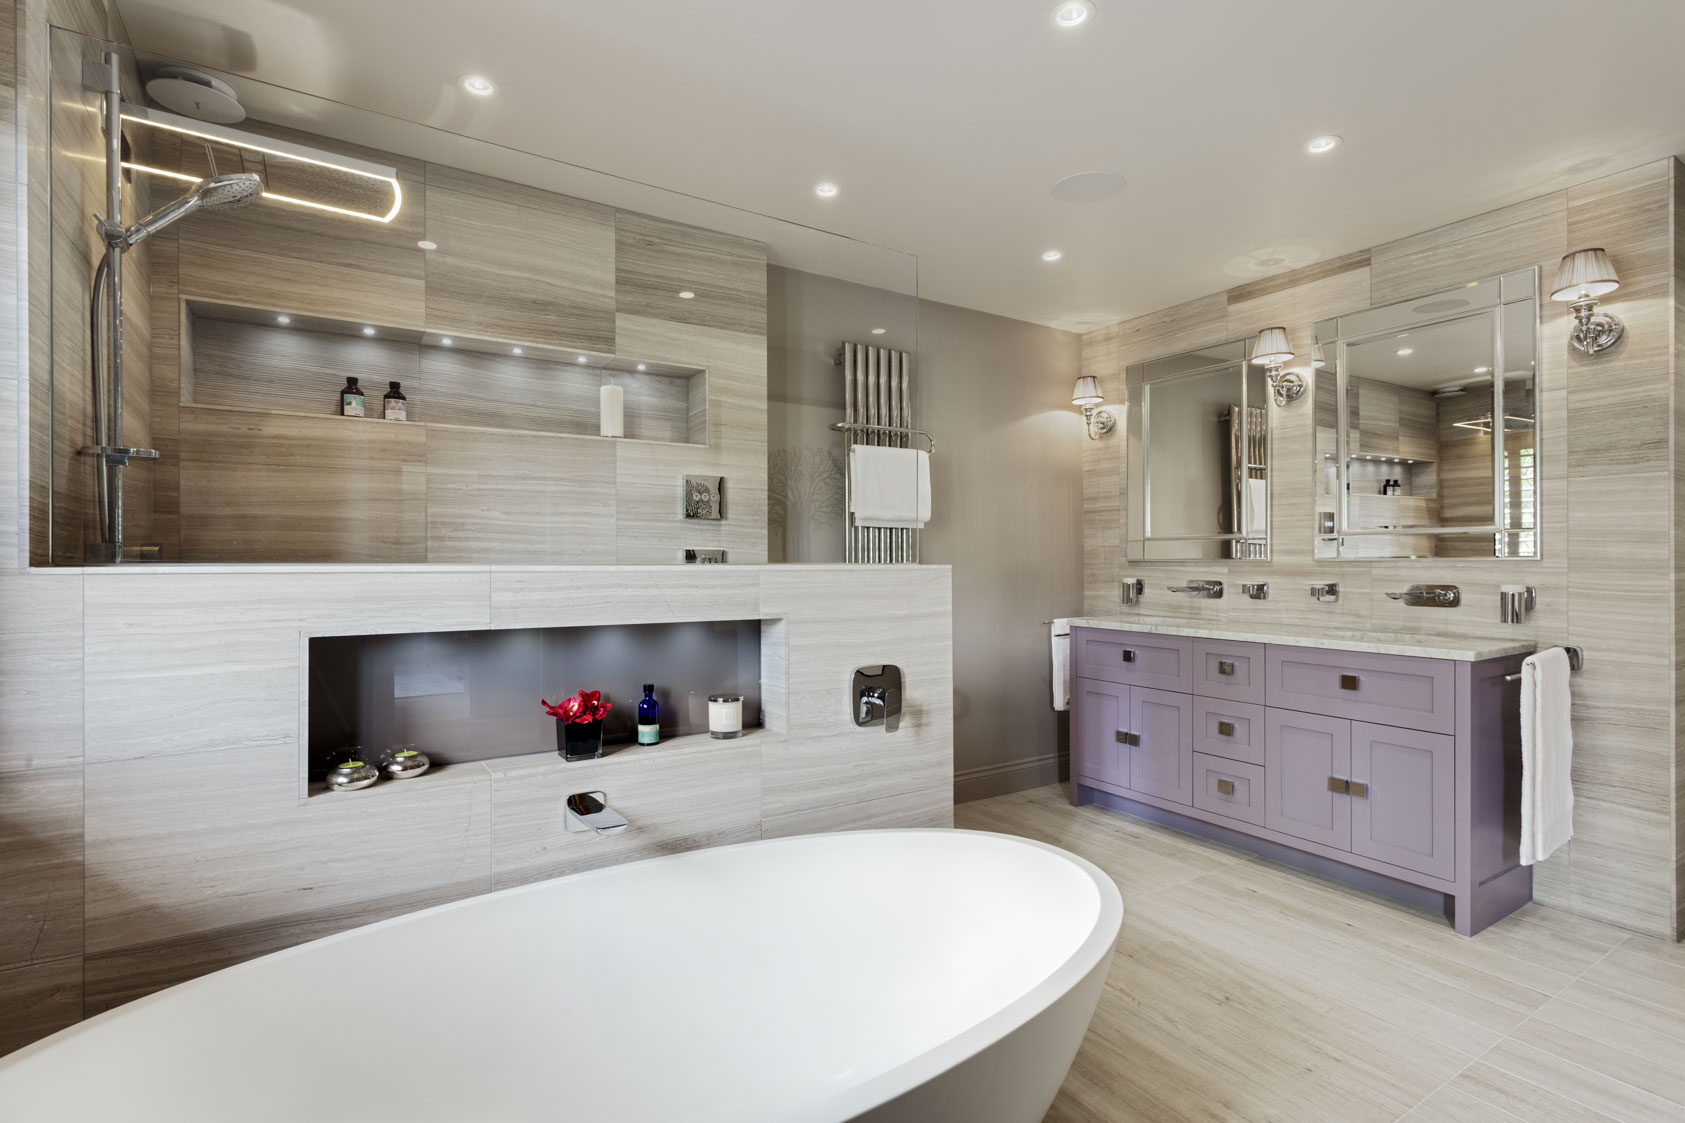 The brighton bathroom company luxury bathroom design in for Bathroom designs 3m x 2m